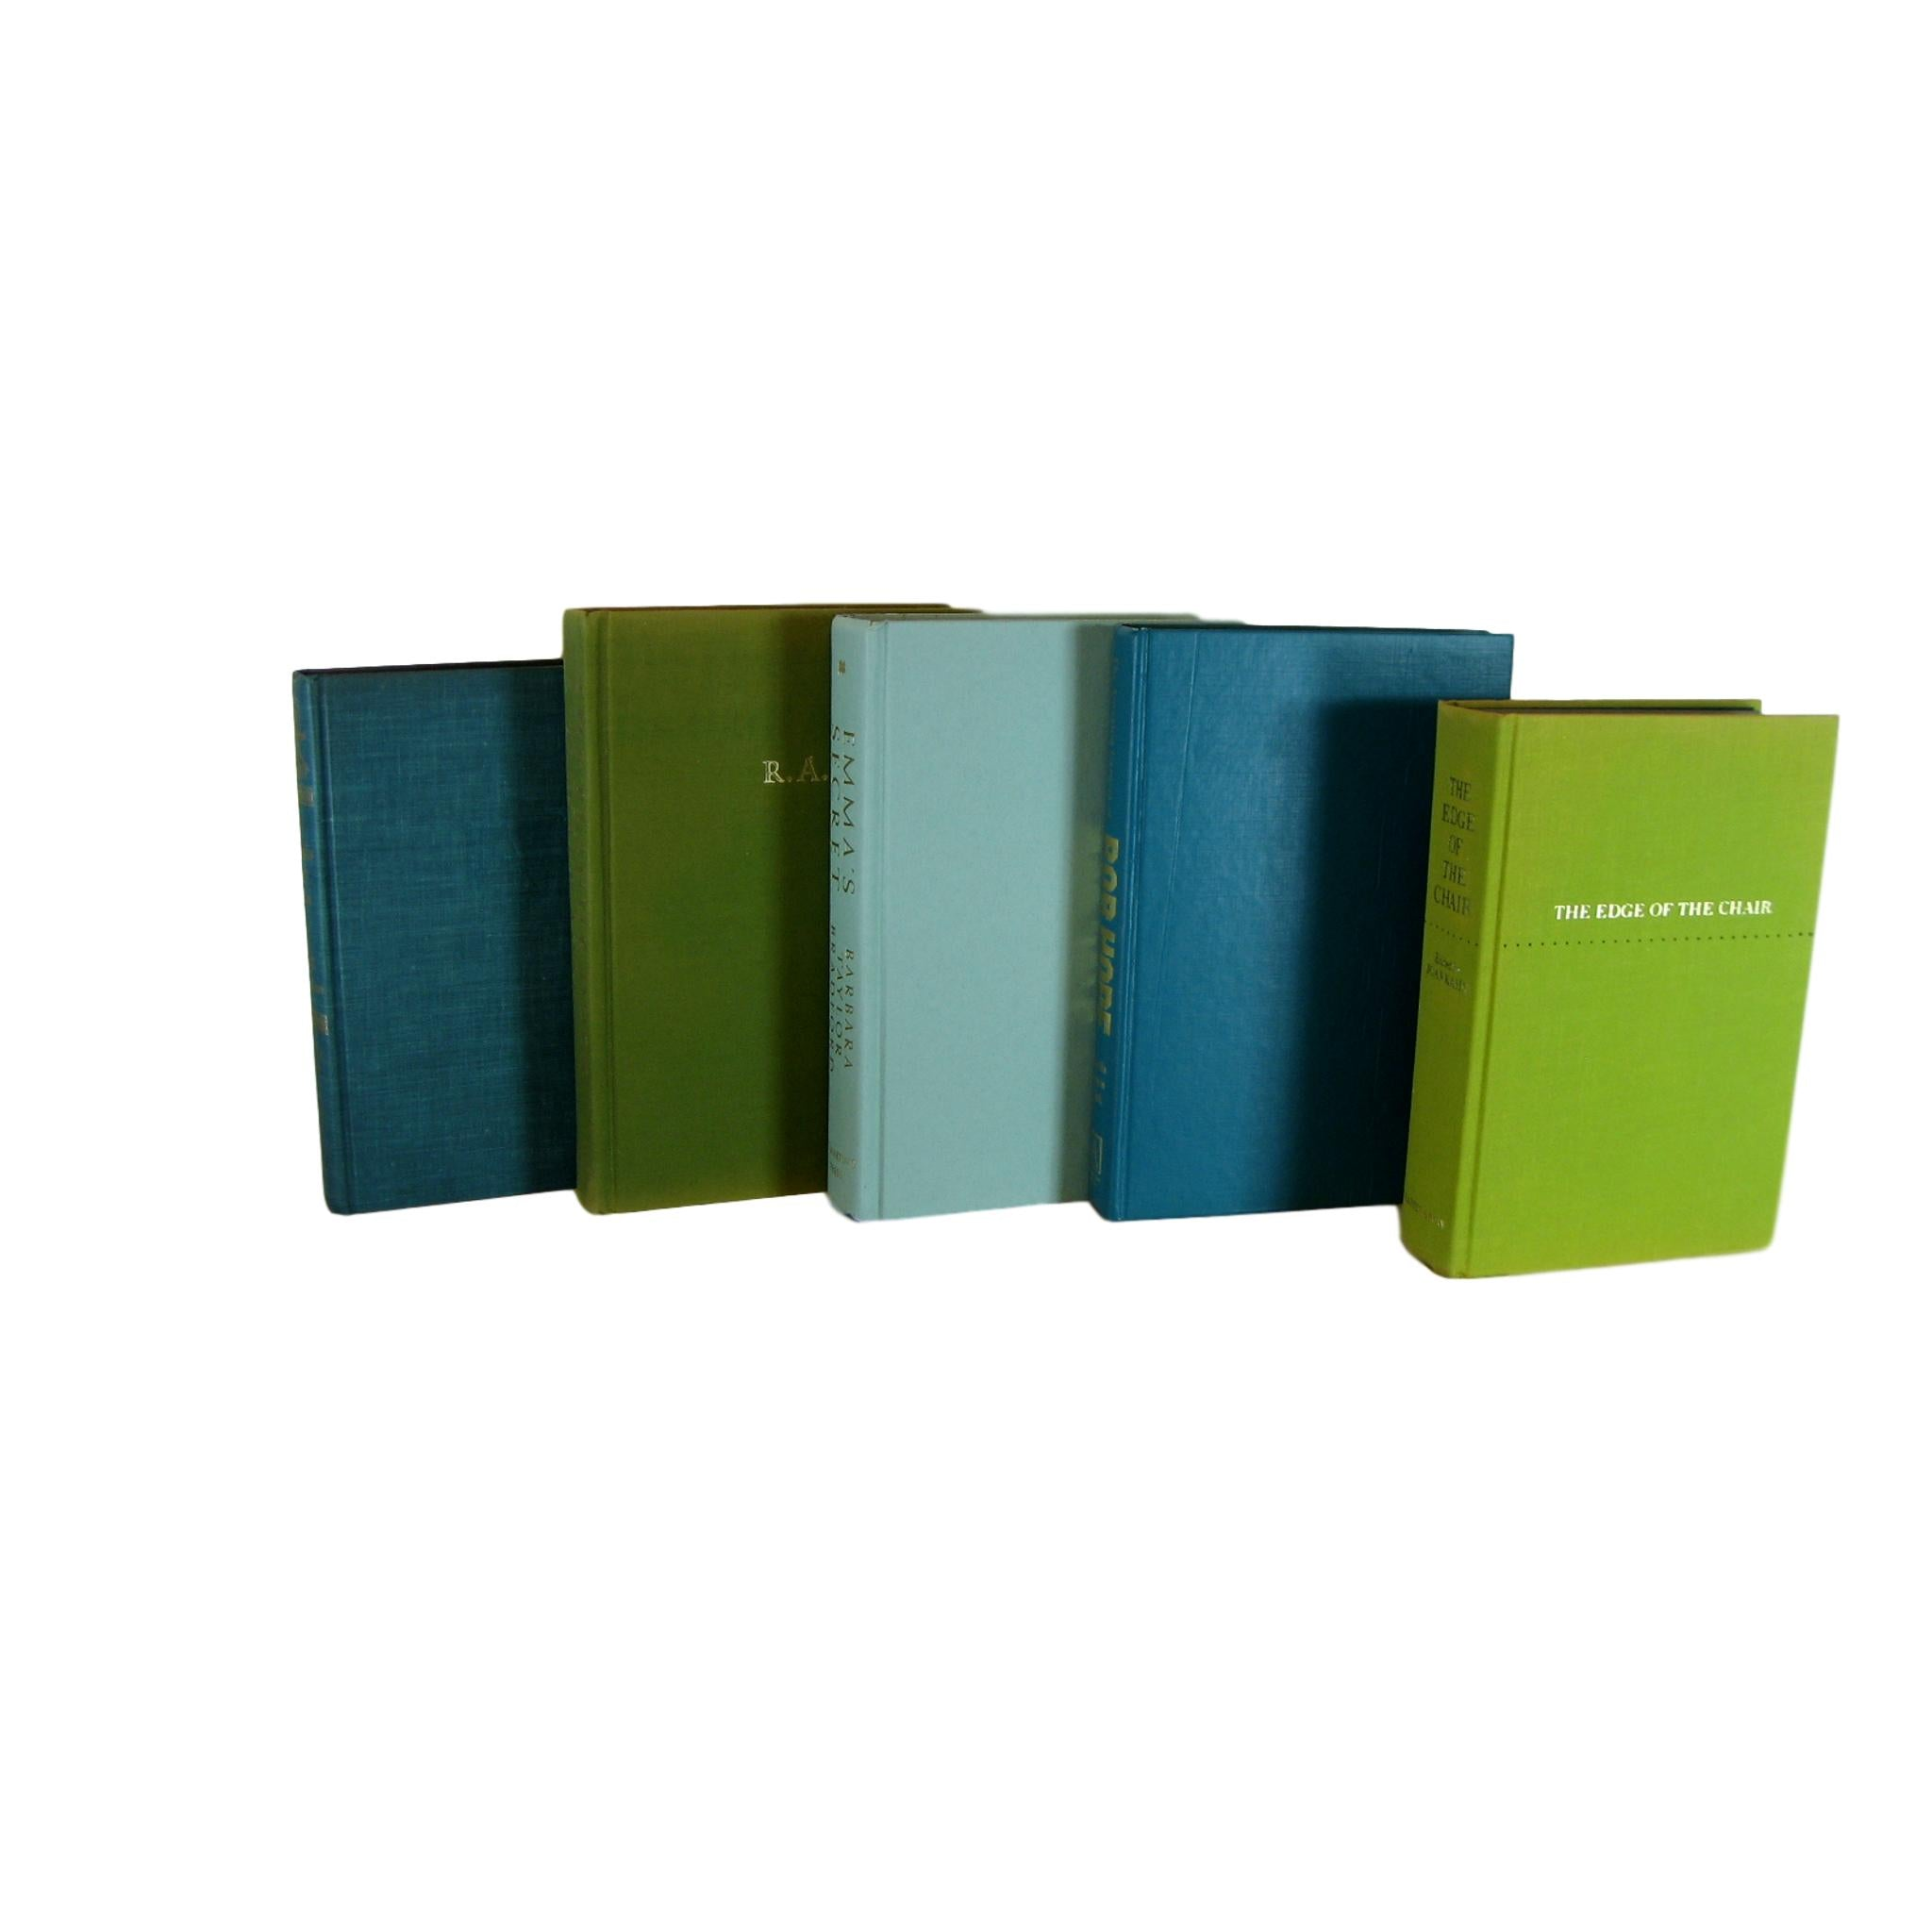 Green Blue Decorative Books, S/5 - Decades of Vintage